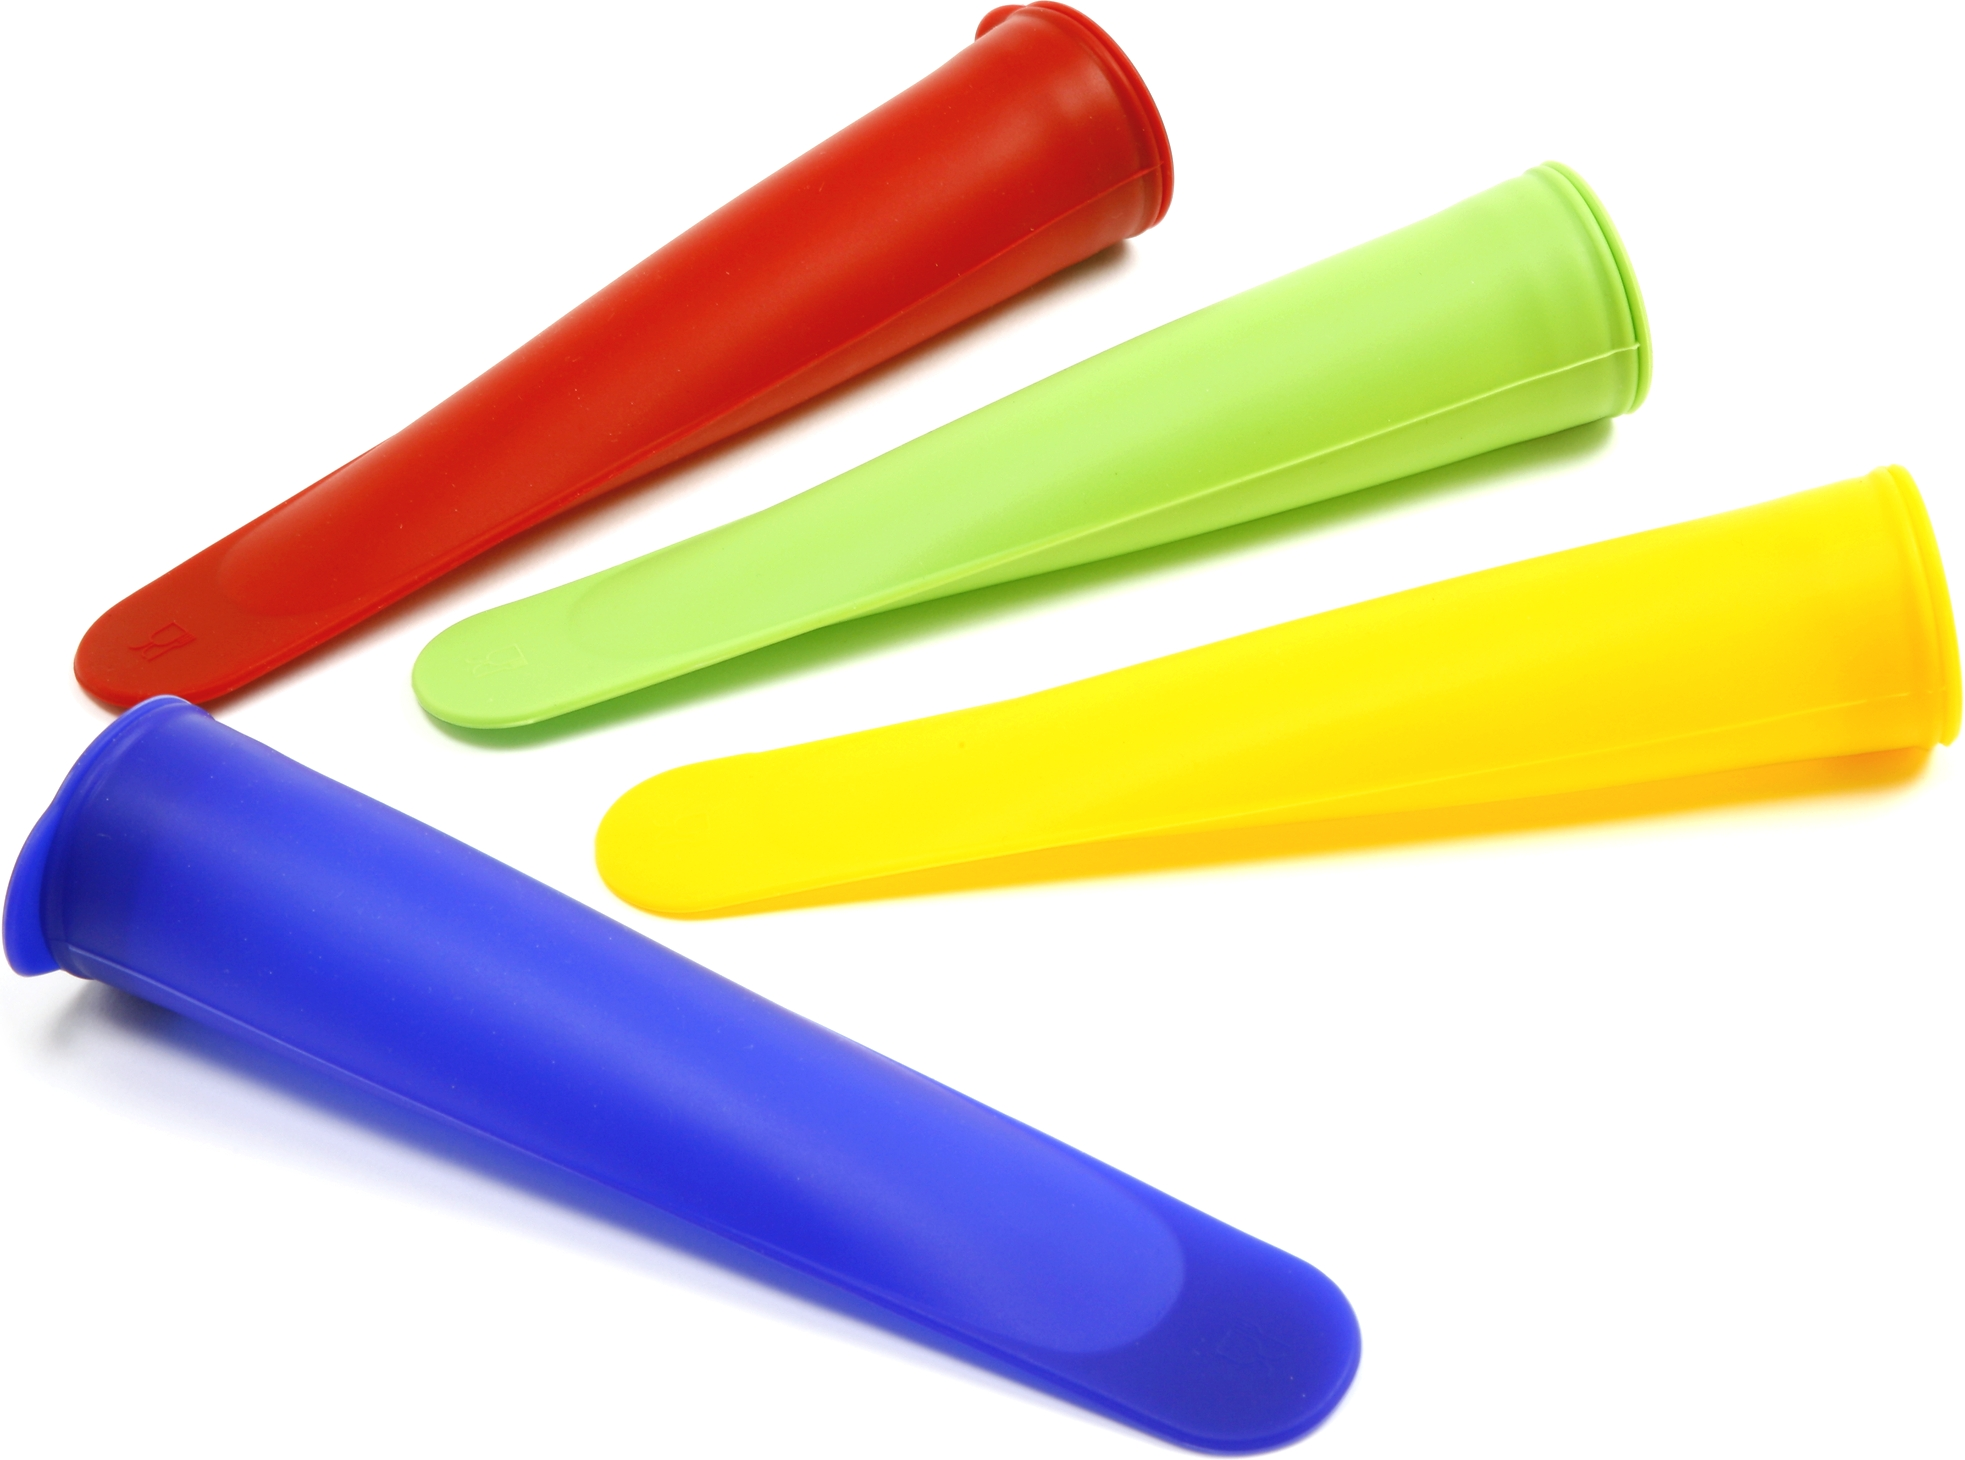 Norpro Multicolored Silicone Ice Pop Maker, Set of 4